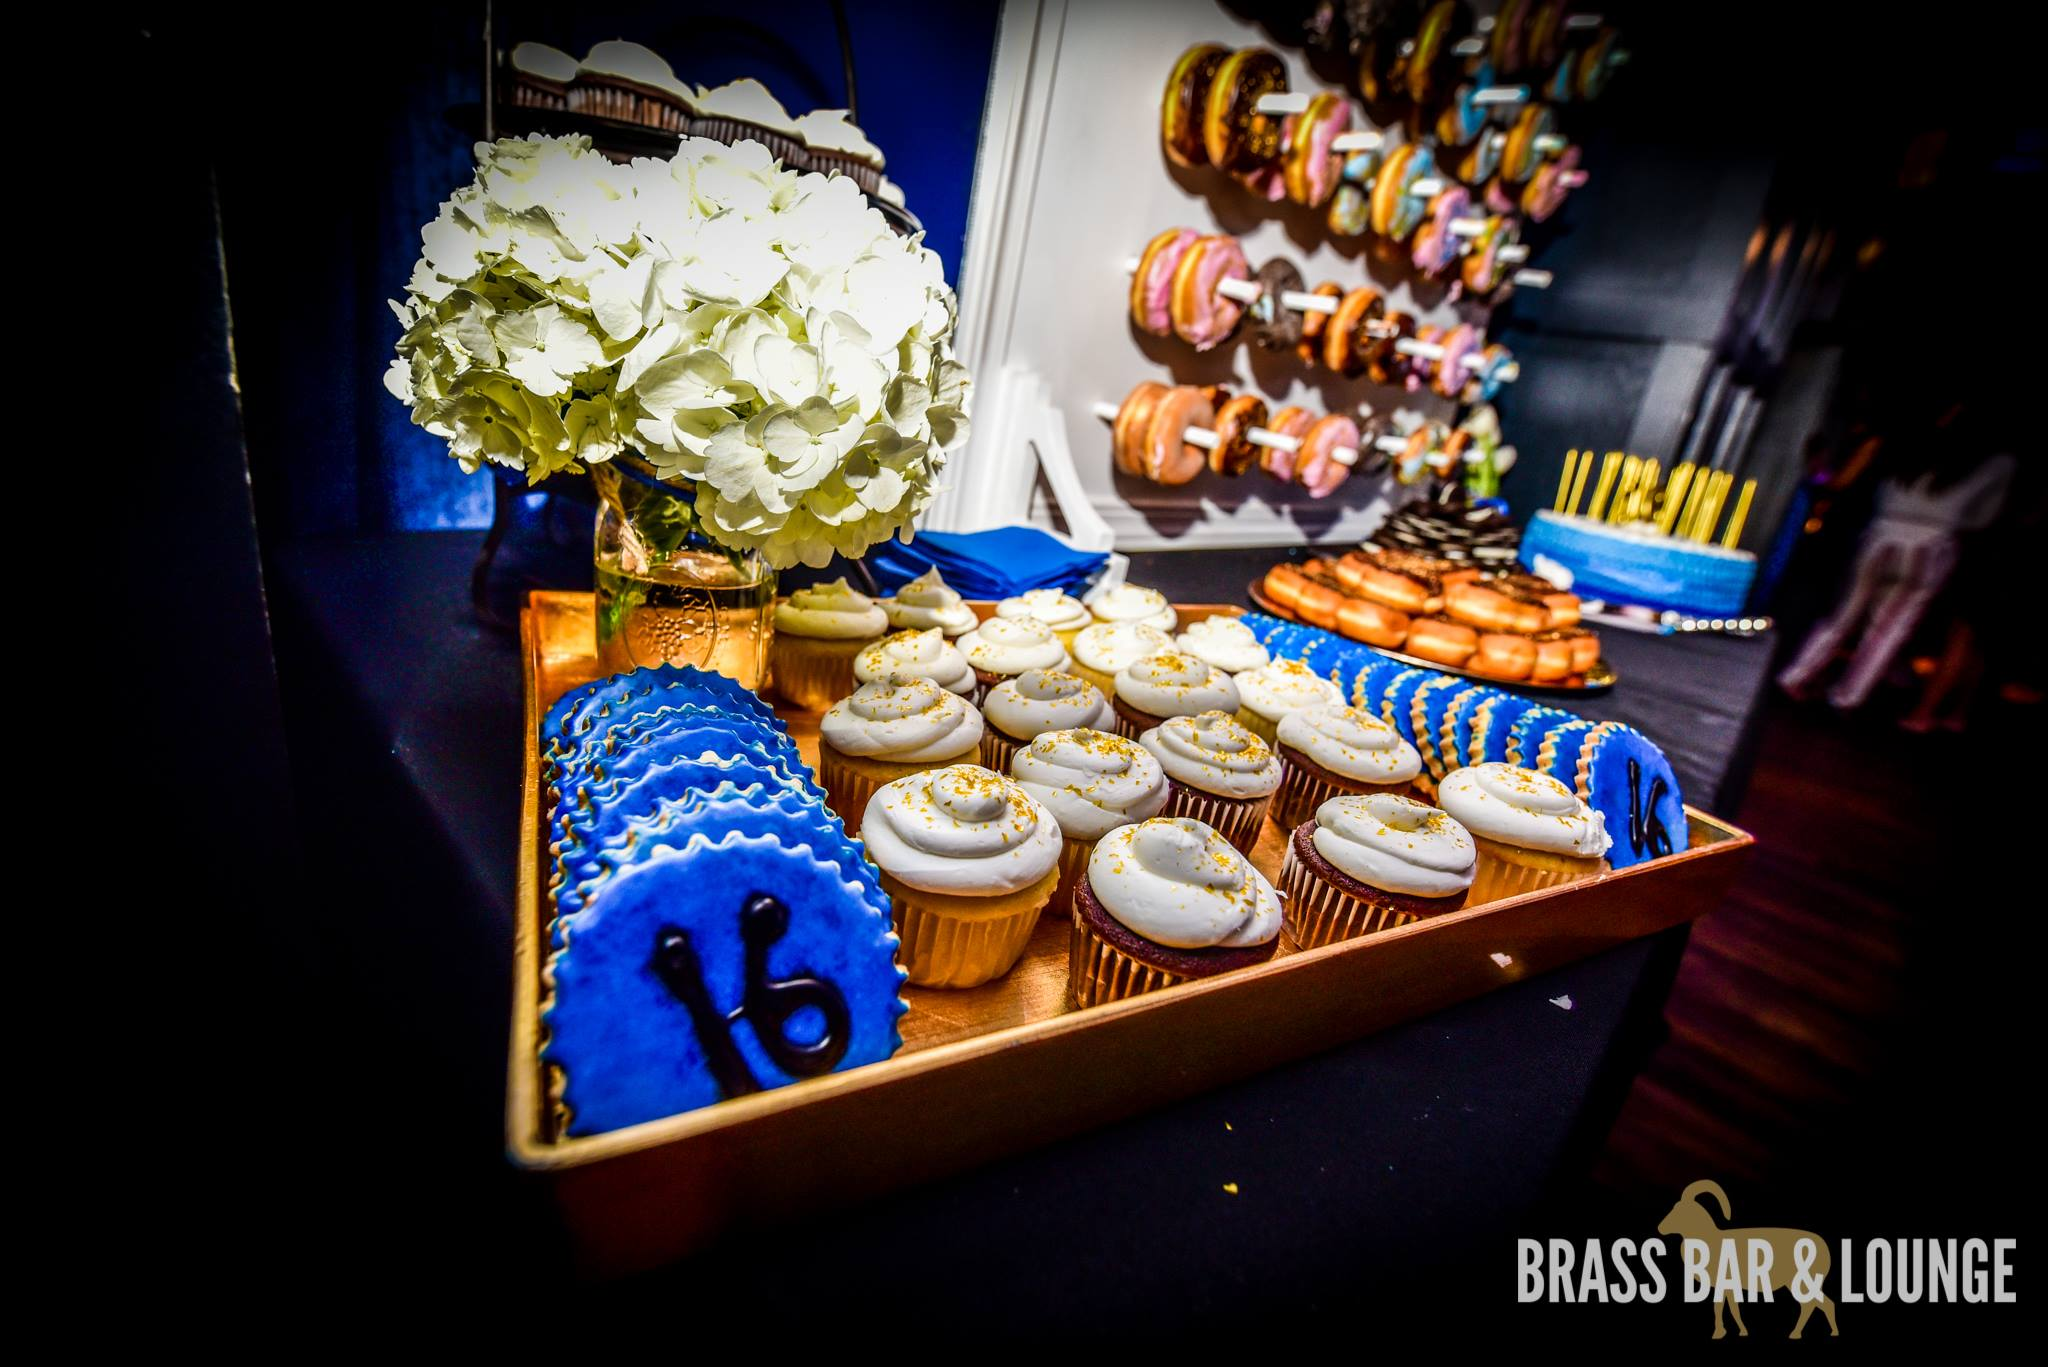 A tray of desserts including blue cookies, cupcakes with white icing, and a donut wall in the background.